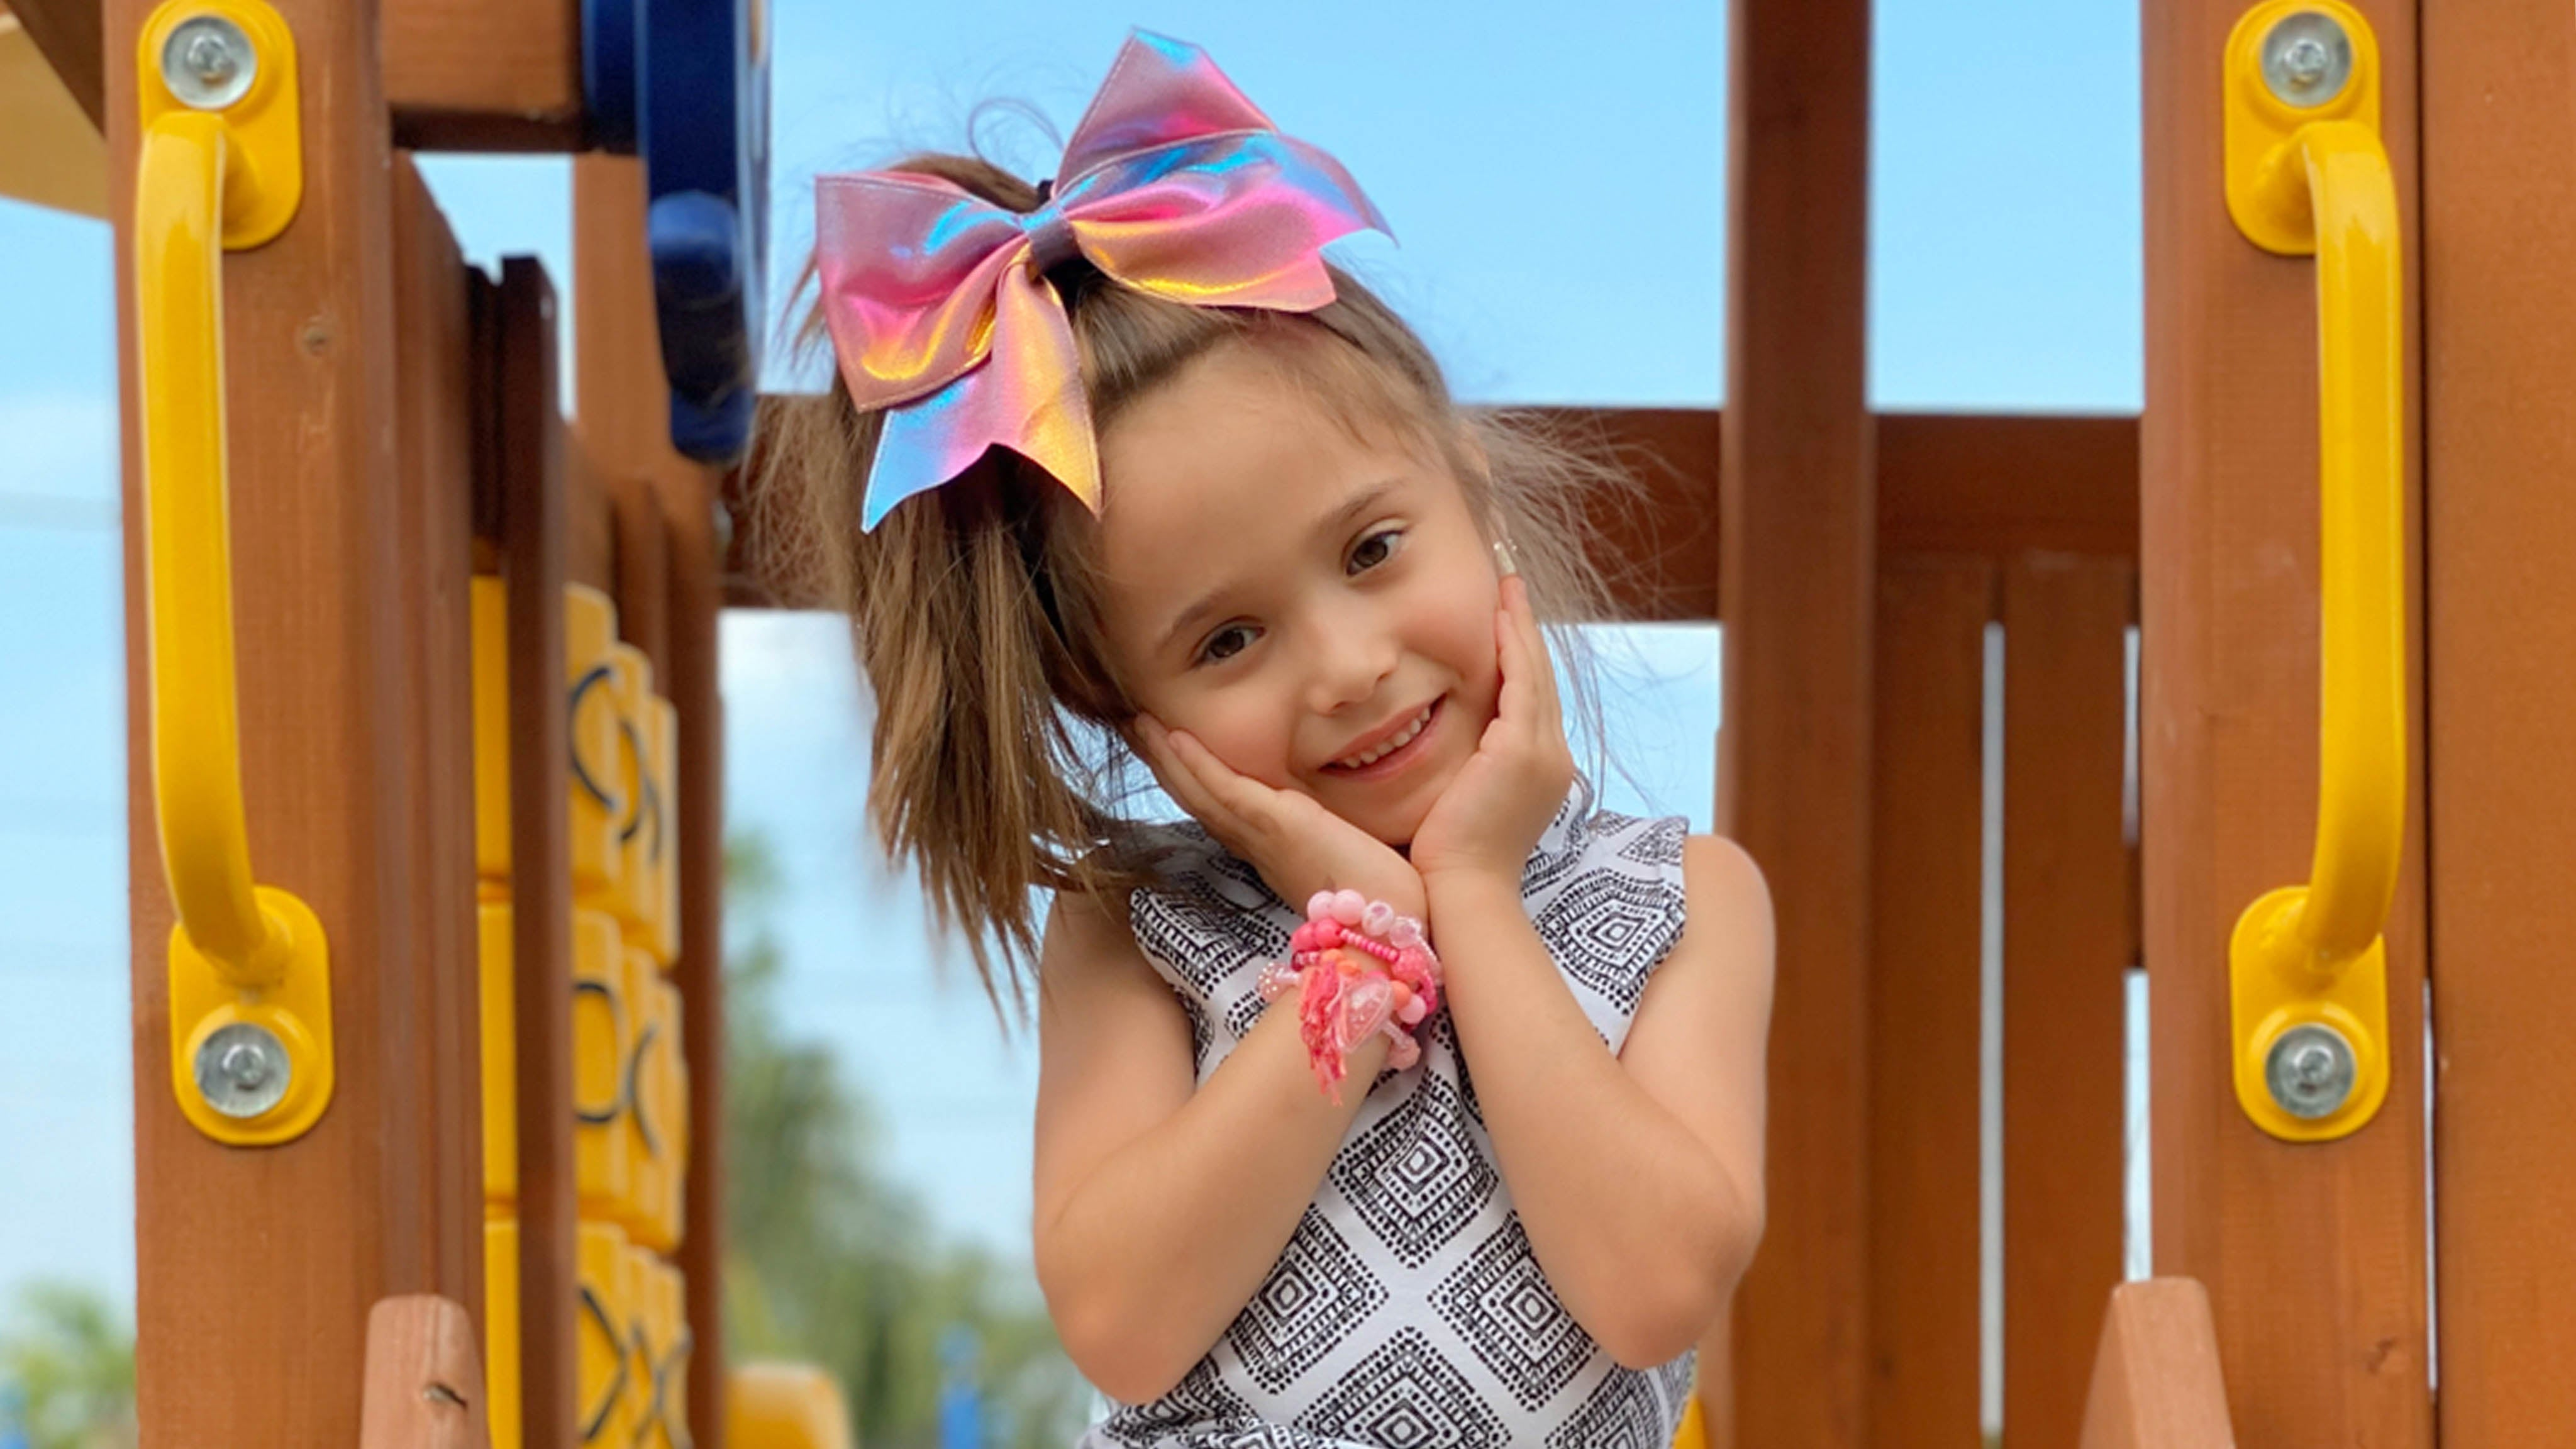 large-hair-bows-for-girls-cheer-bow-hair-accessories-for-kids